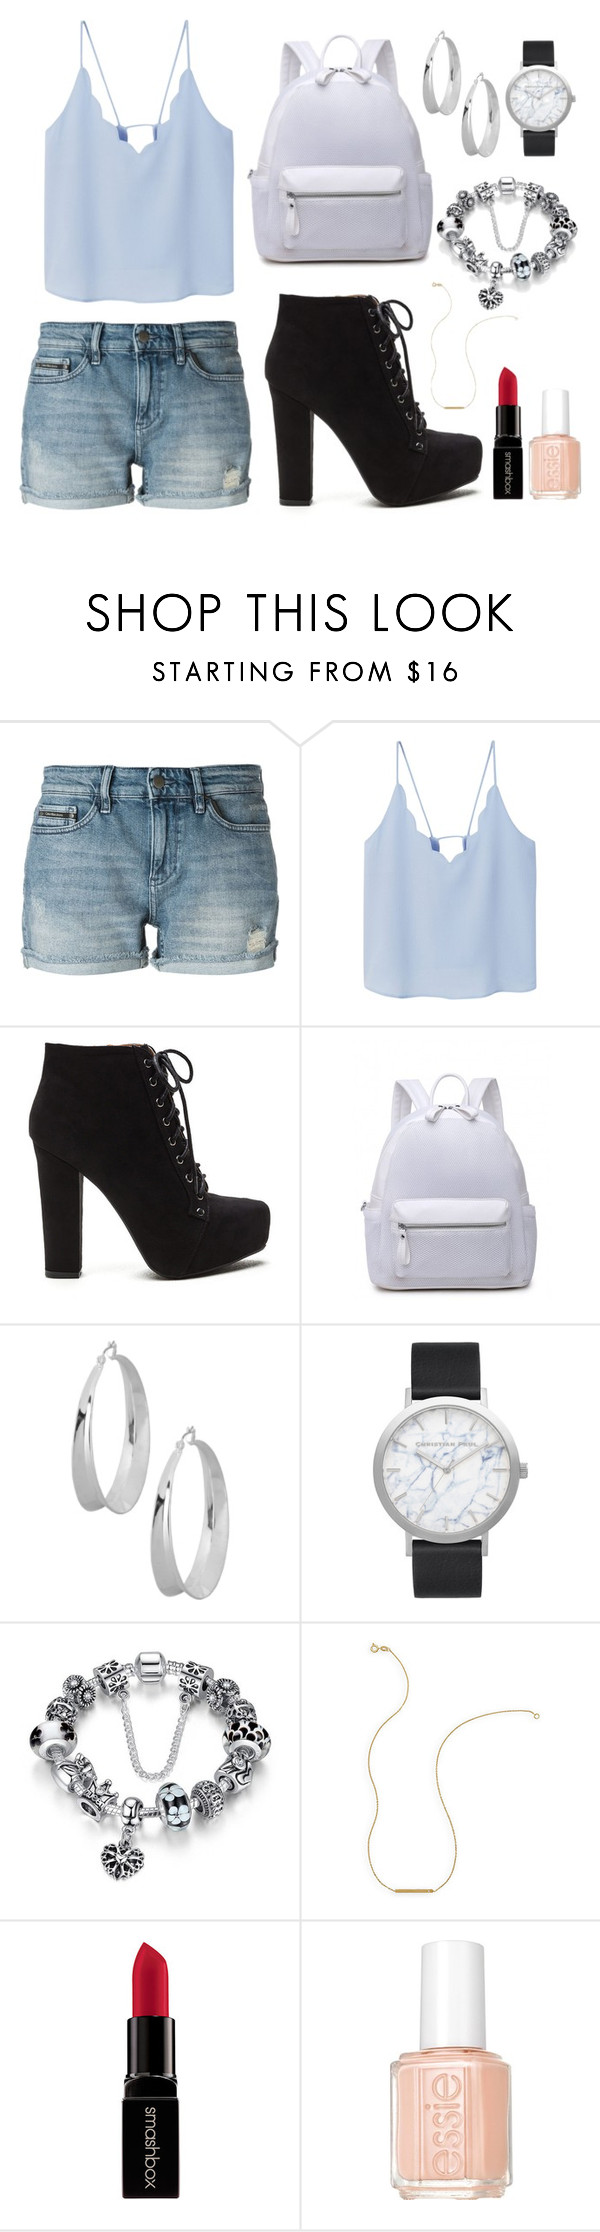 """""""Summee Daft Date"""" by sugarbelle22 ❤ liked on Polyvore featuring Calvin Klein Jeans, MANGO, Robert Lee Morris, Elwood, Wish by Amanda Rose, Smashbox and Essie"""